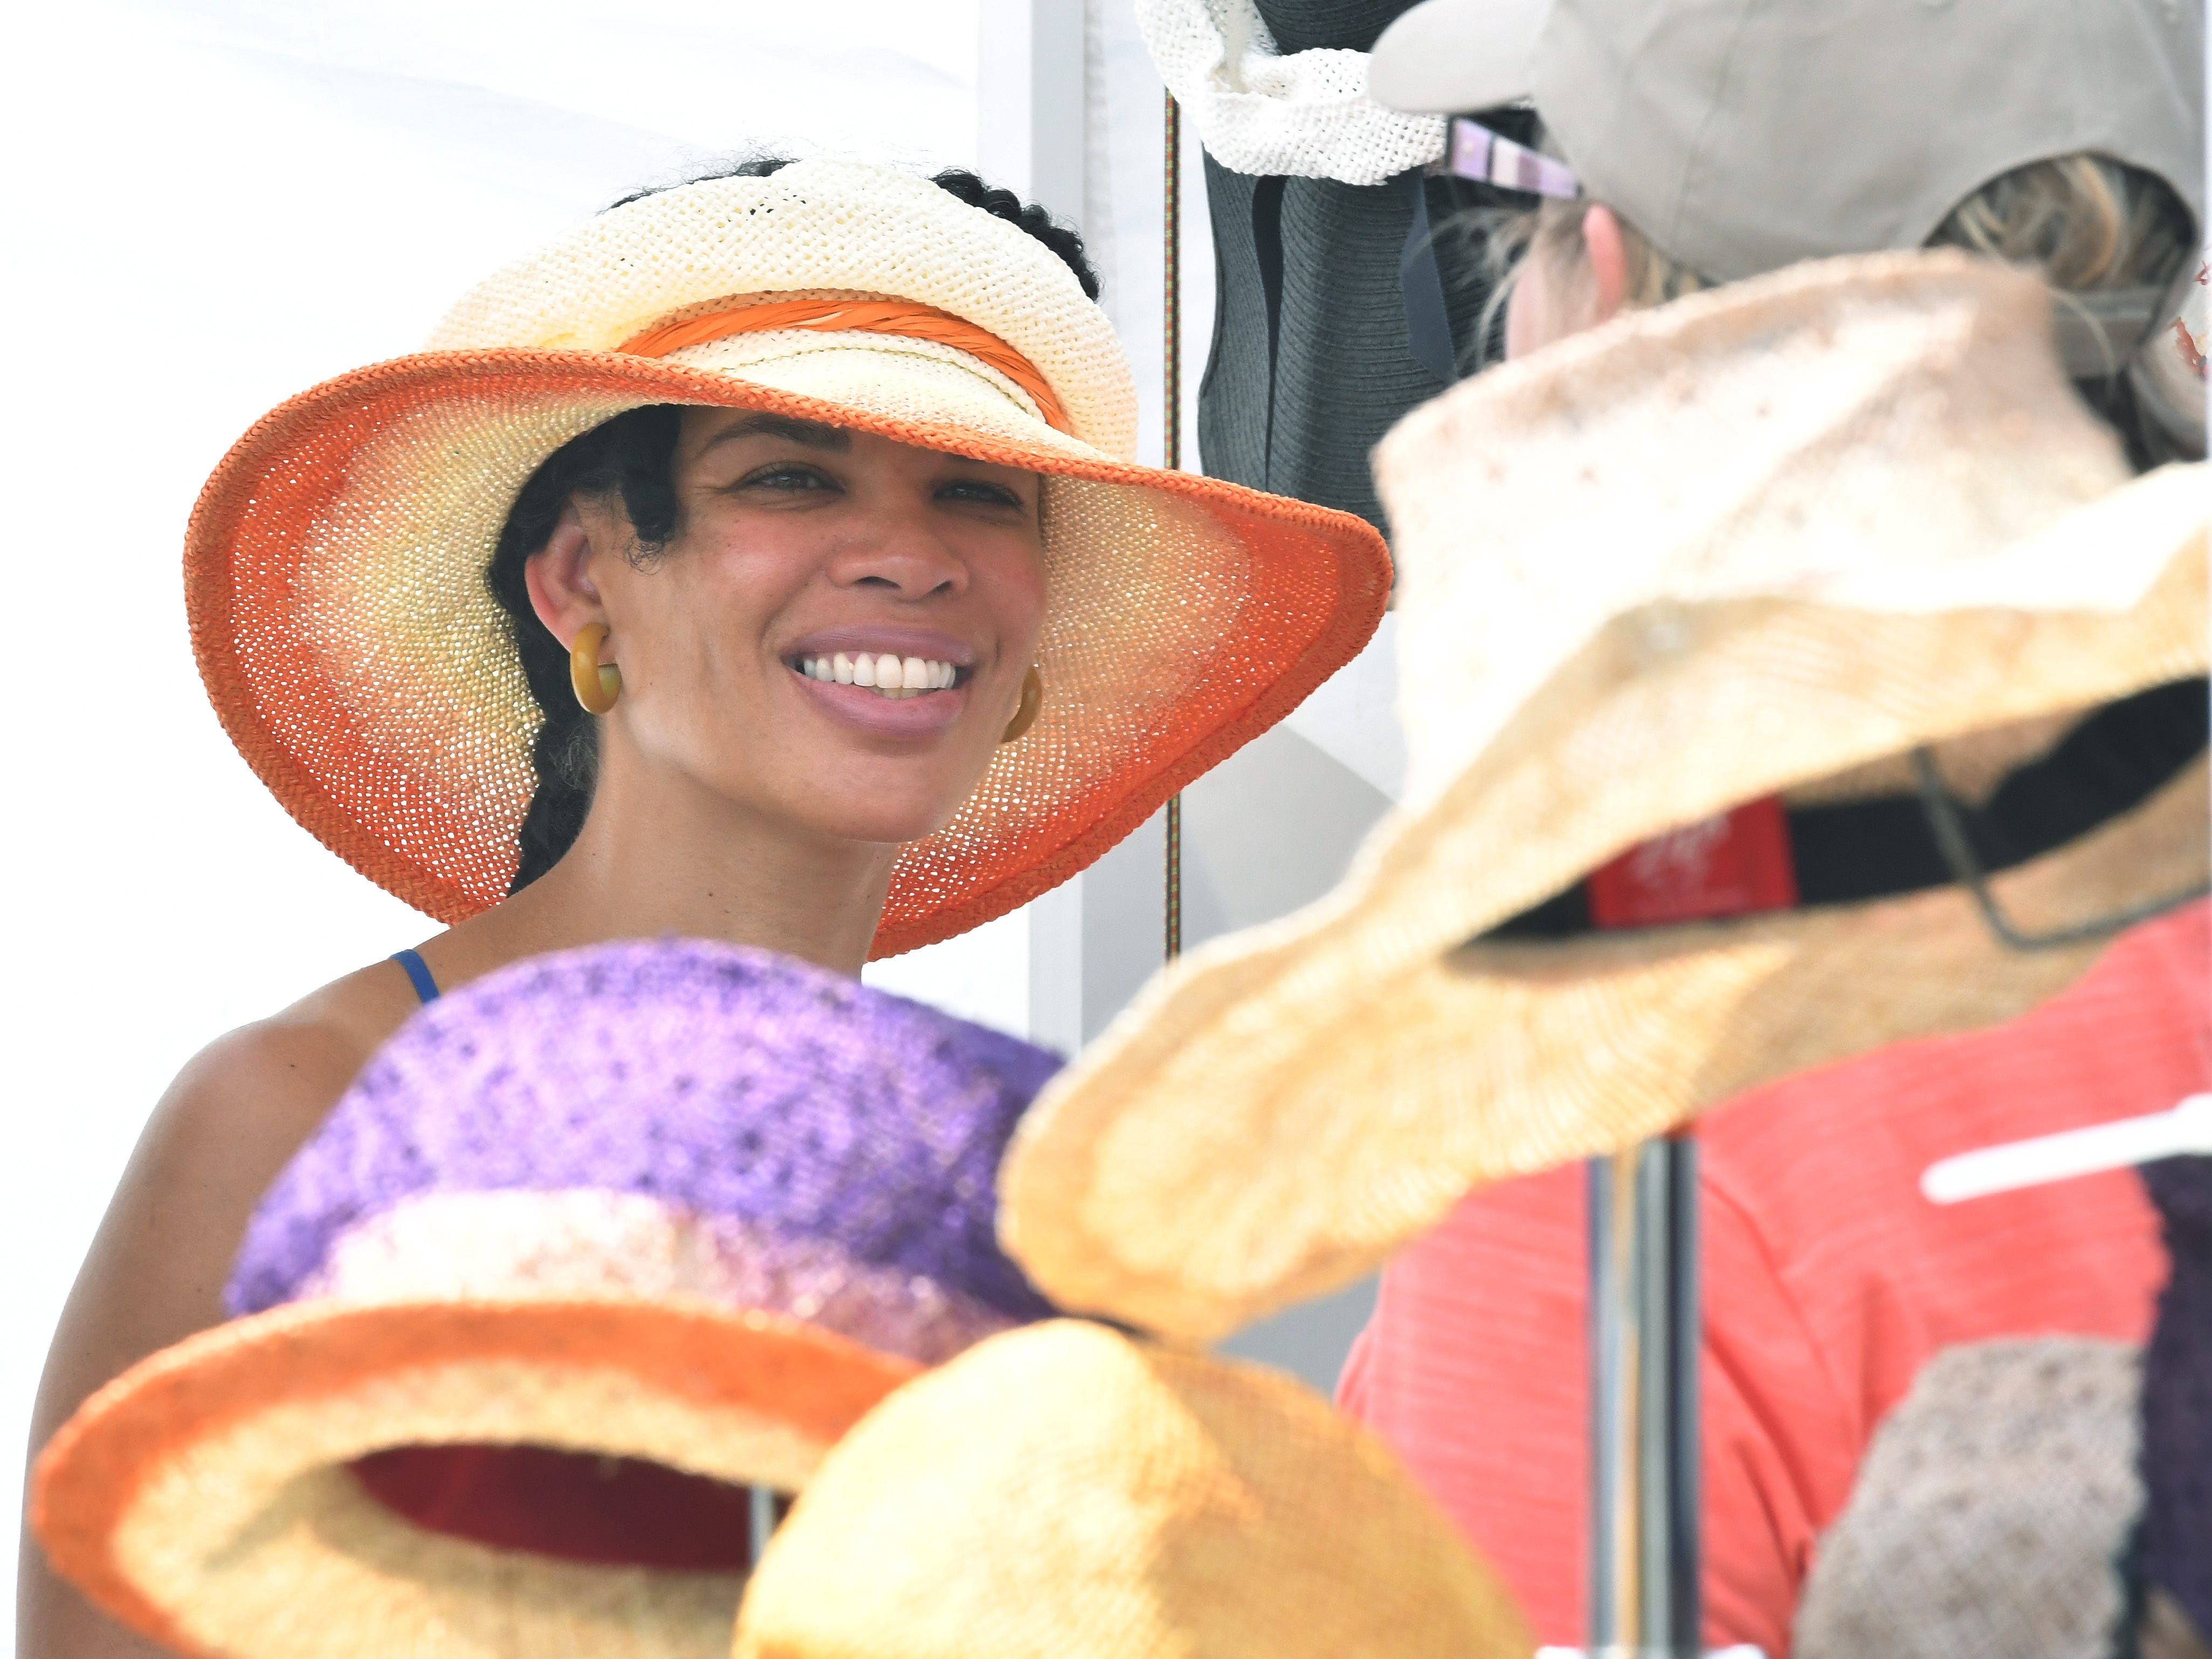 Ella Isaac of L.I.P.S. Hats (Living In Perfect Style) at her booth at the Belle Isle Art Fair.